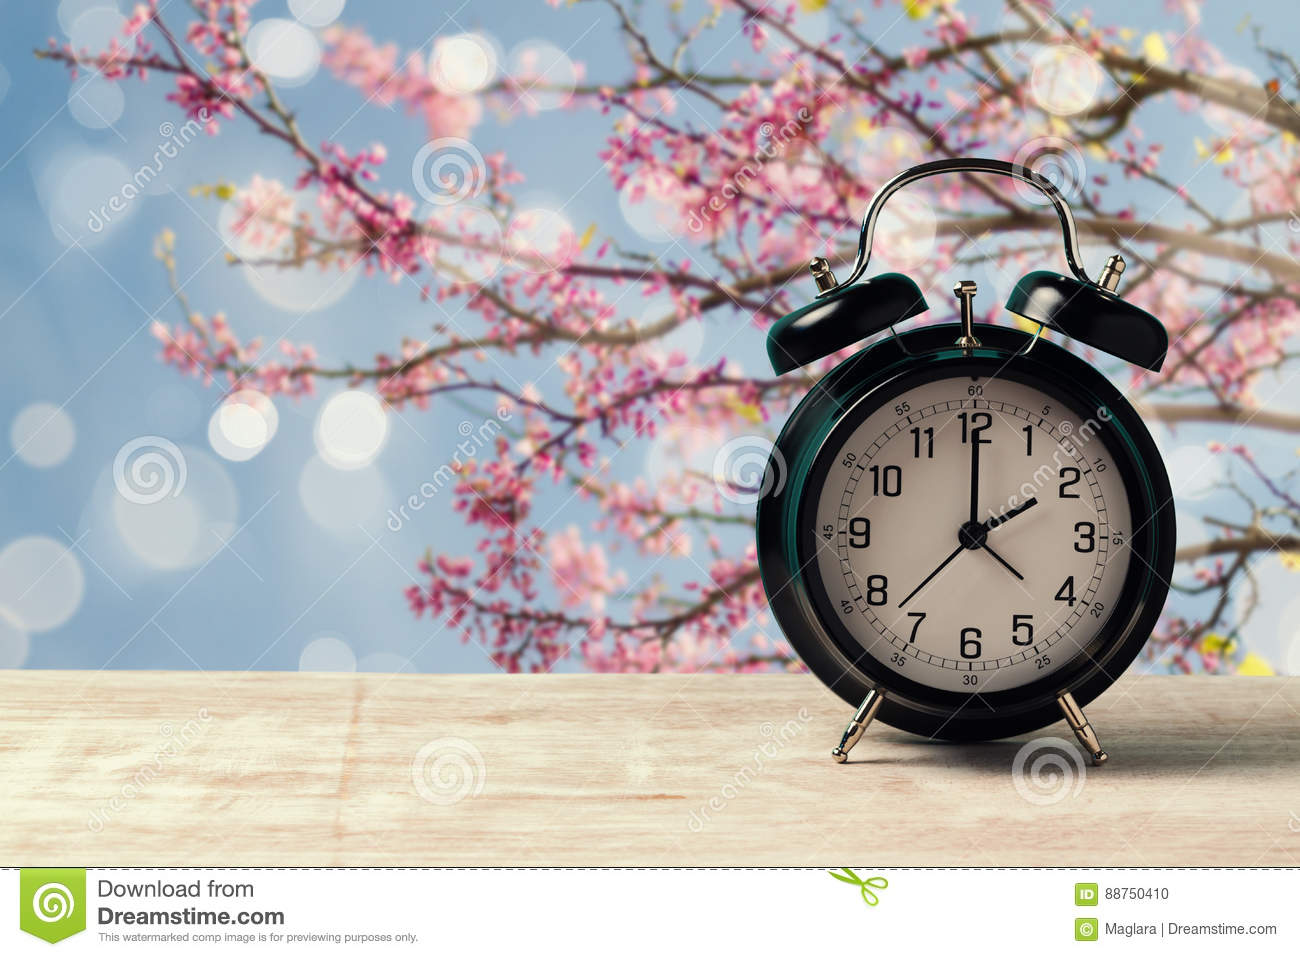 Spring time change concept with alarm clock on wooden table over nature tree blossom